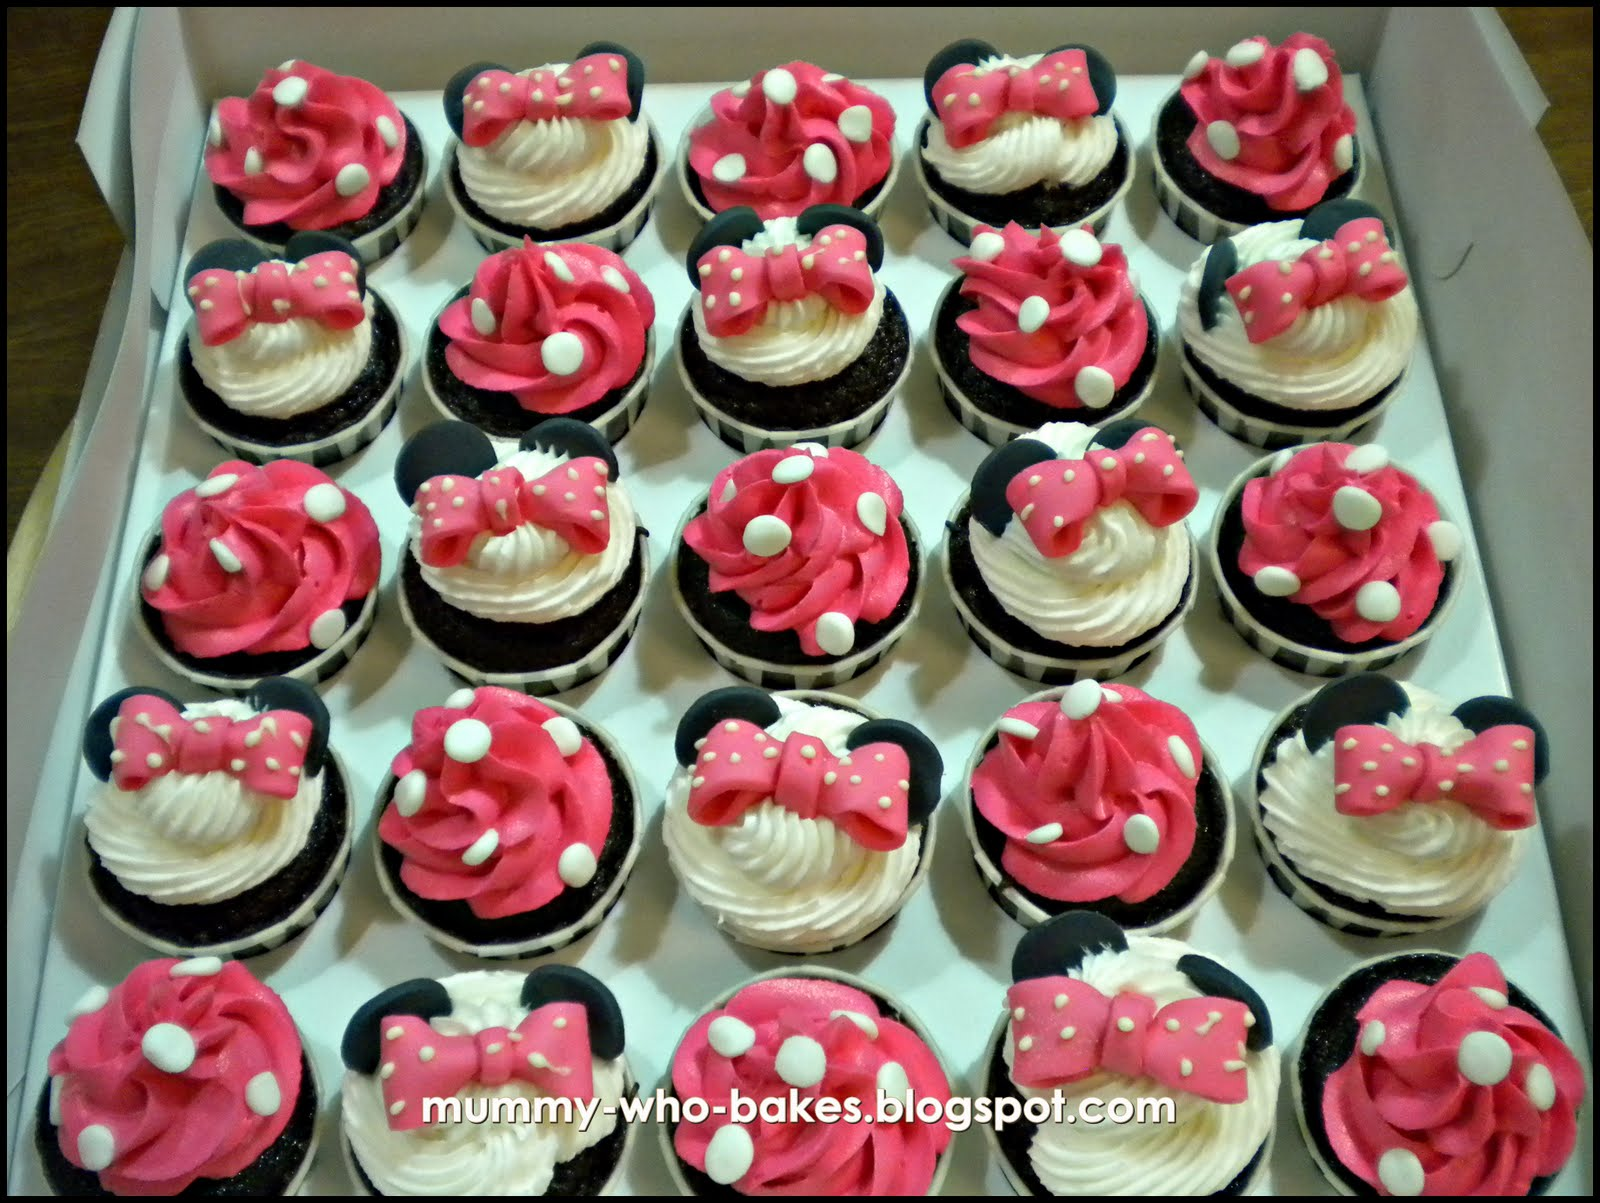 My Little Cupcakes...: February 2011